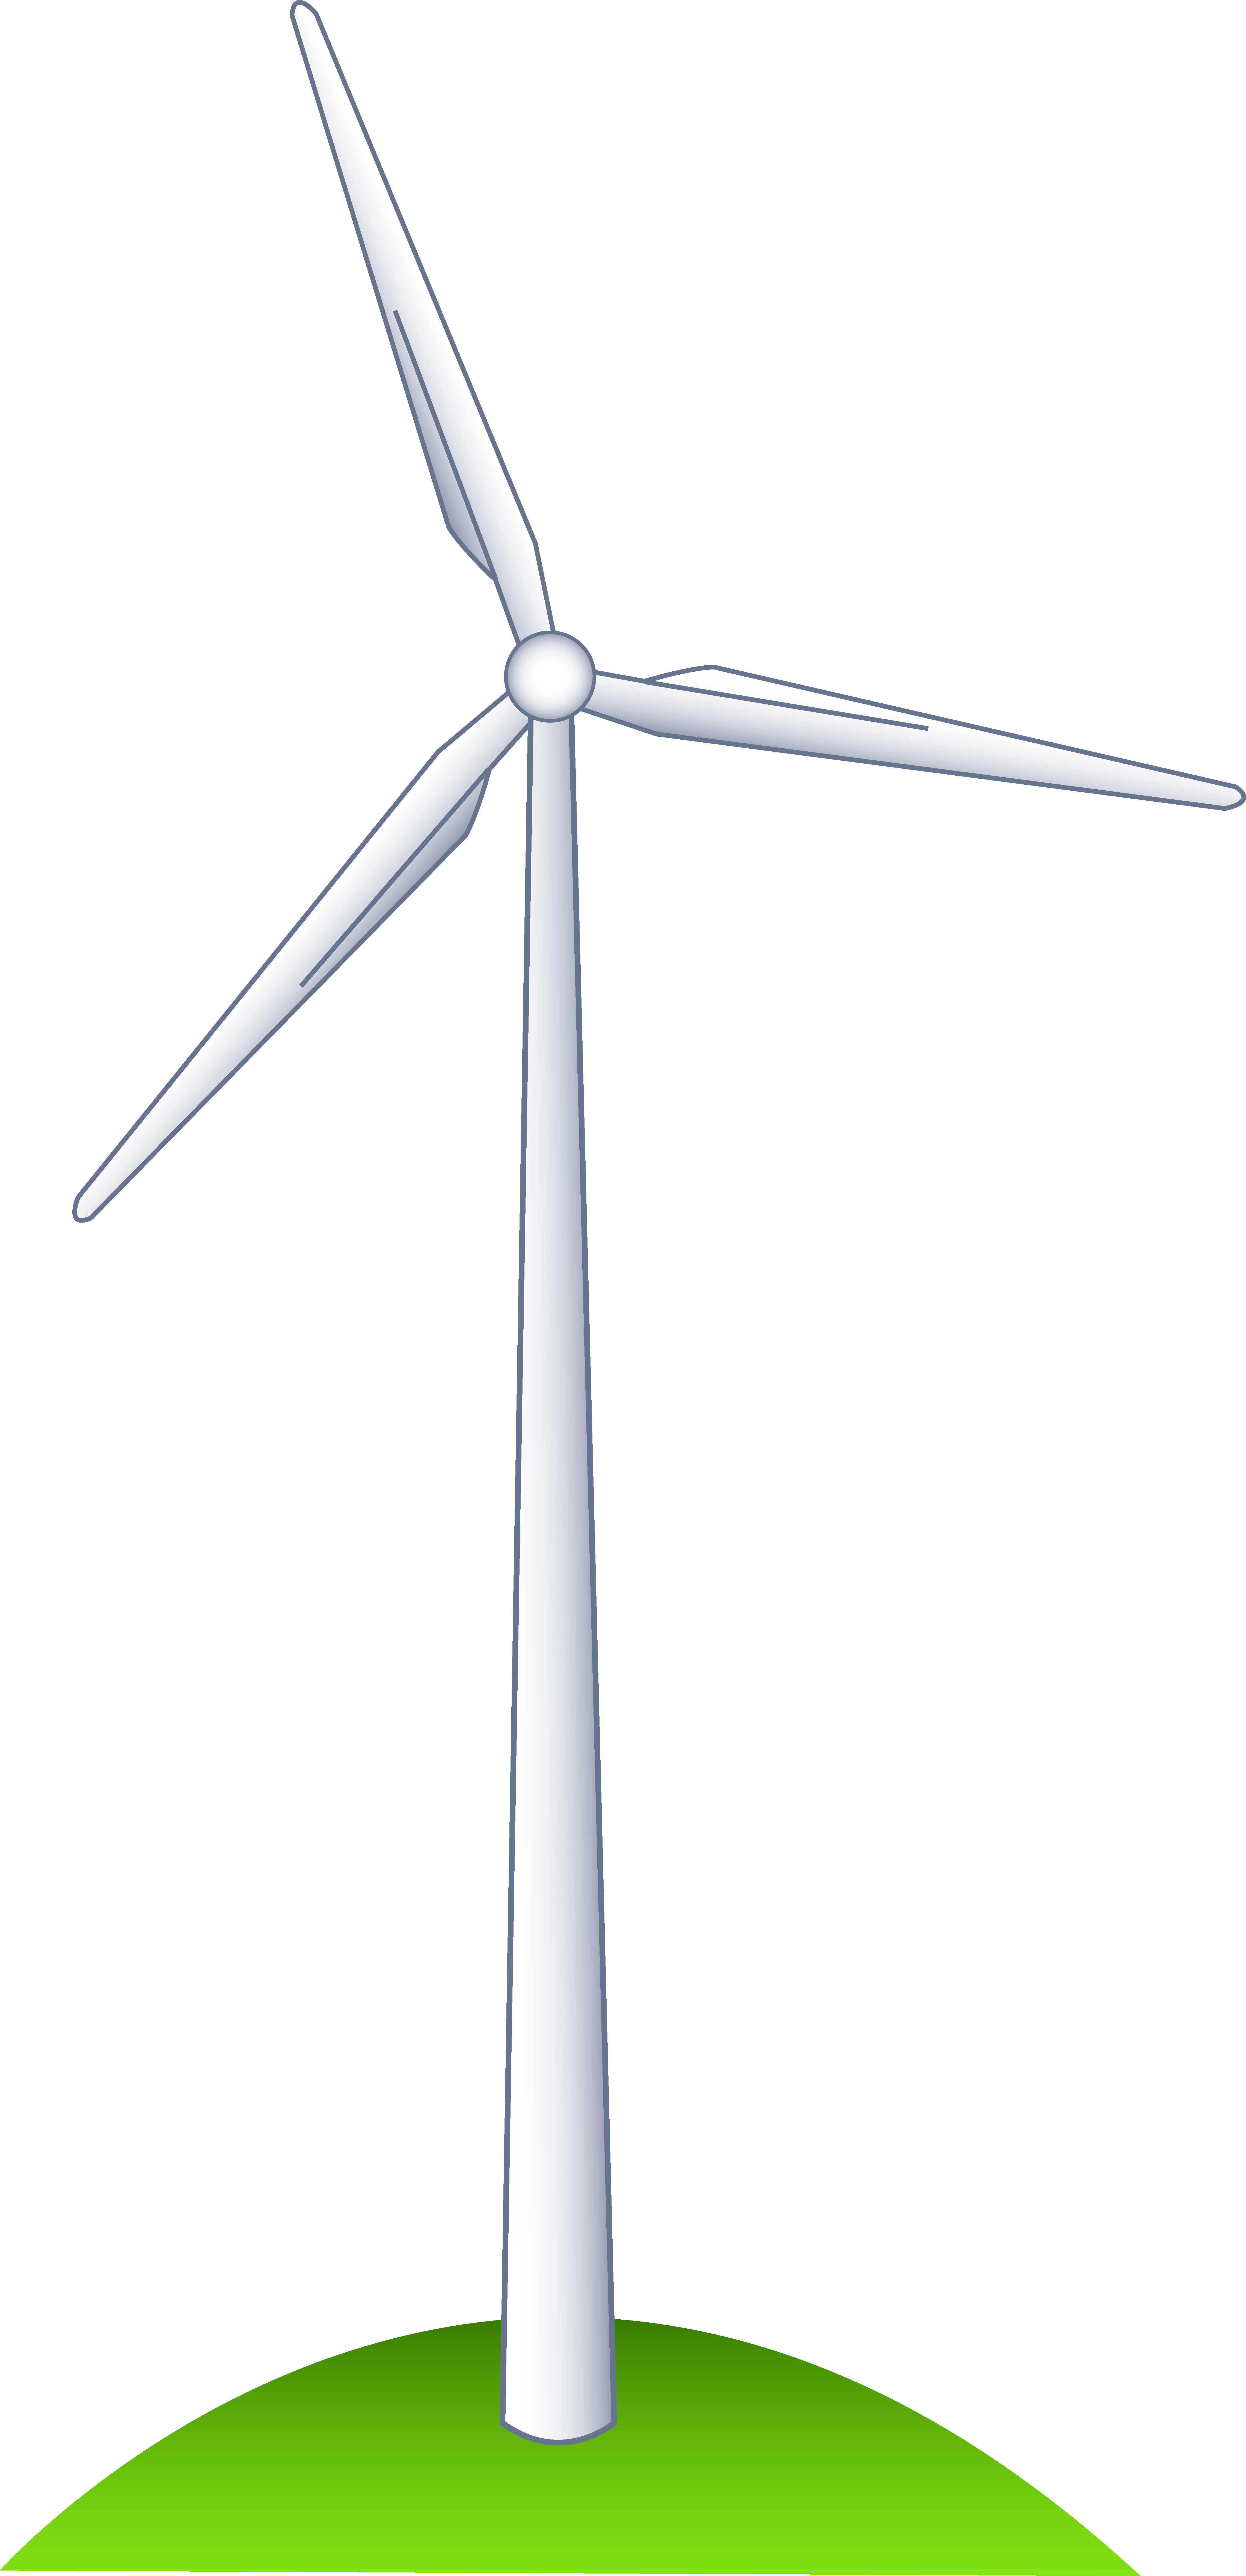 image black and white stock Wind on a hill. Turbine clipart